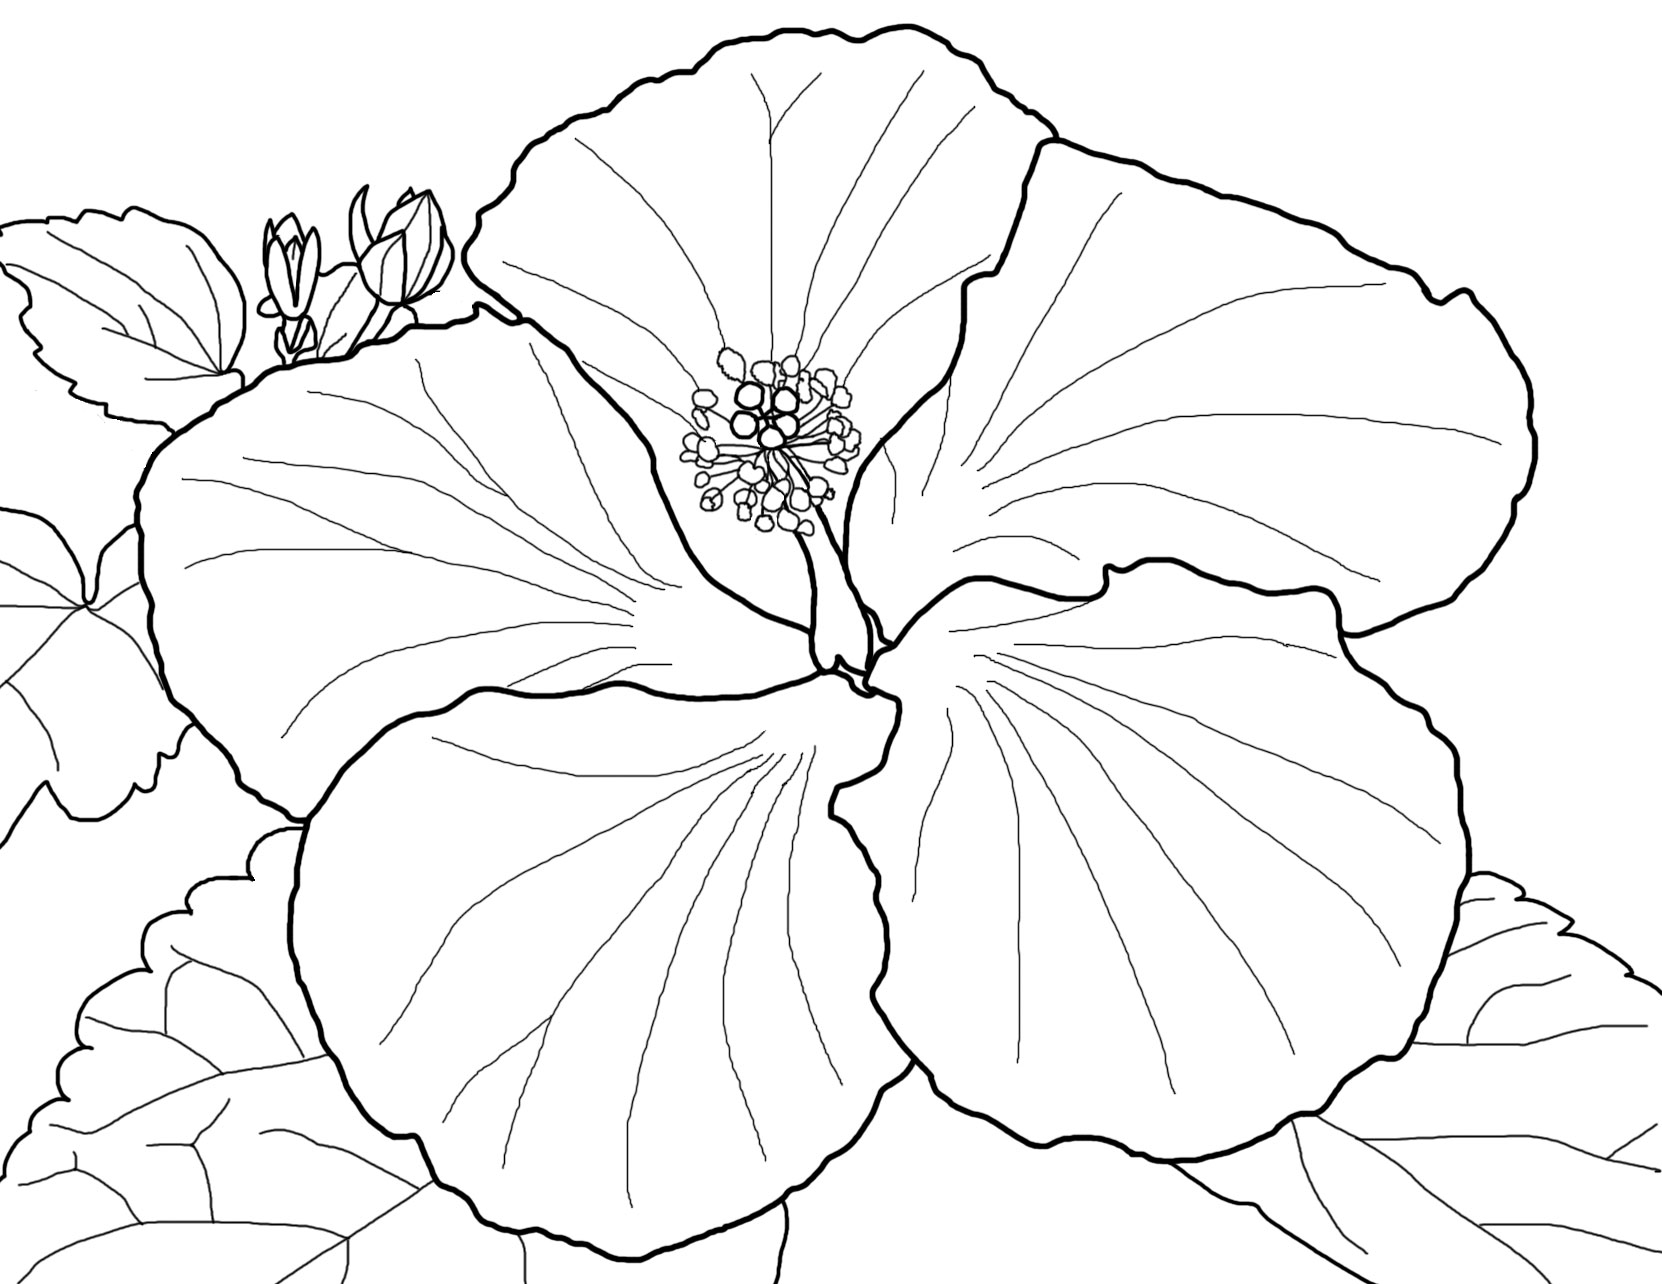 Coloring Pages Of Hibiscus Flowers : Hibiscus flower coloring pages for kids cooloring